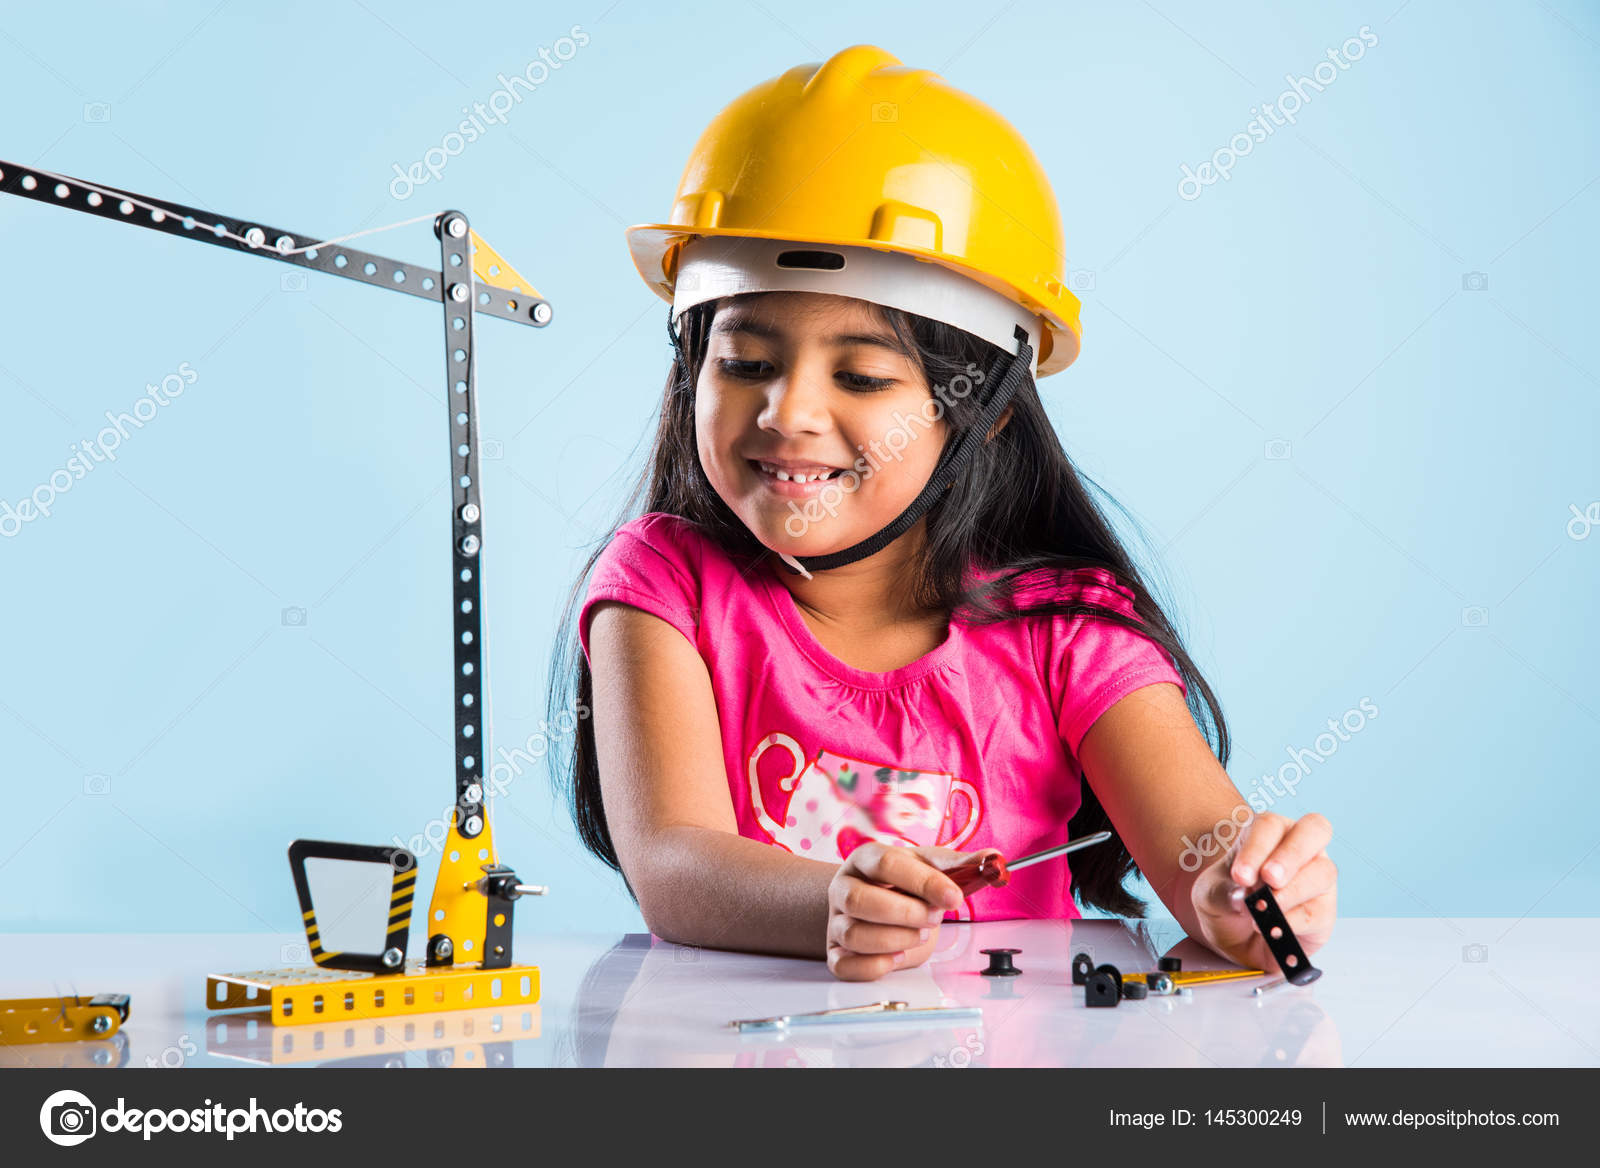 cute indian baby girl playing with toy crane wearing yellow